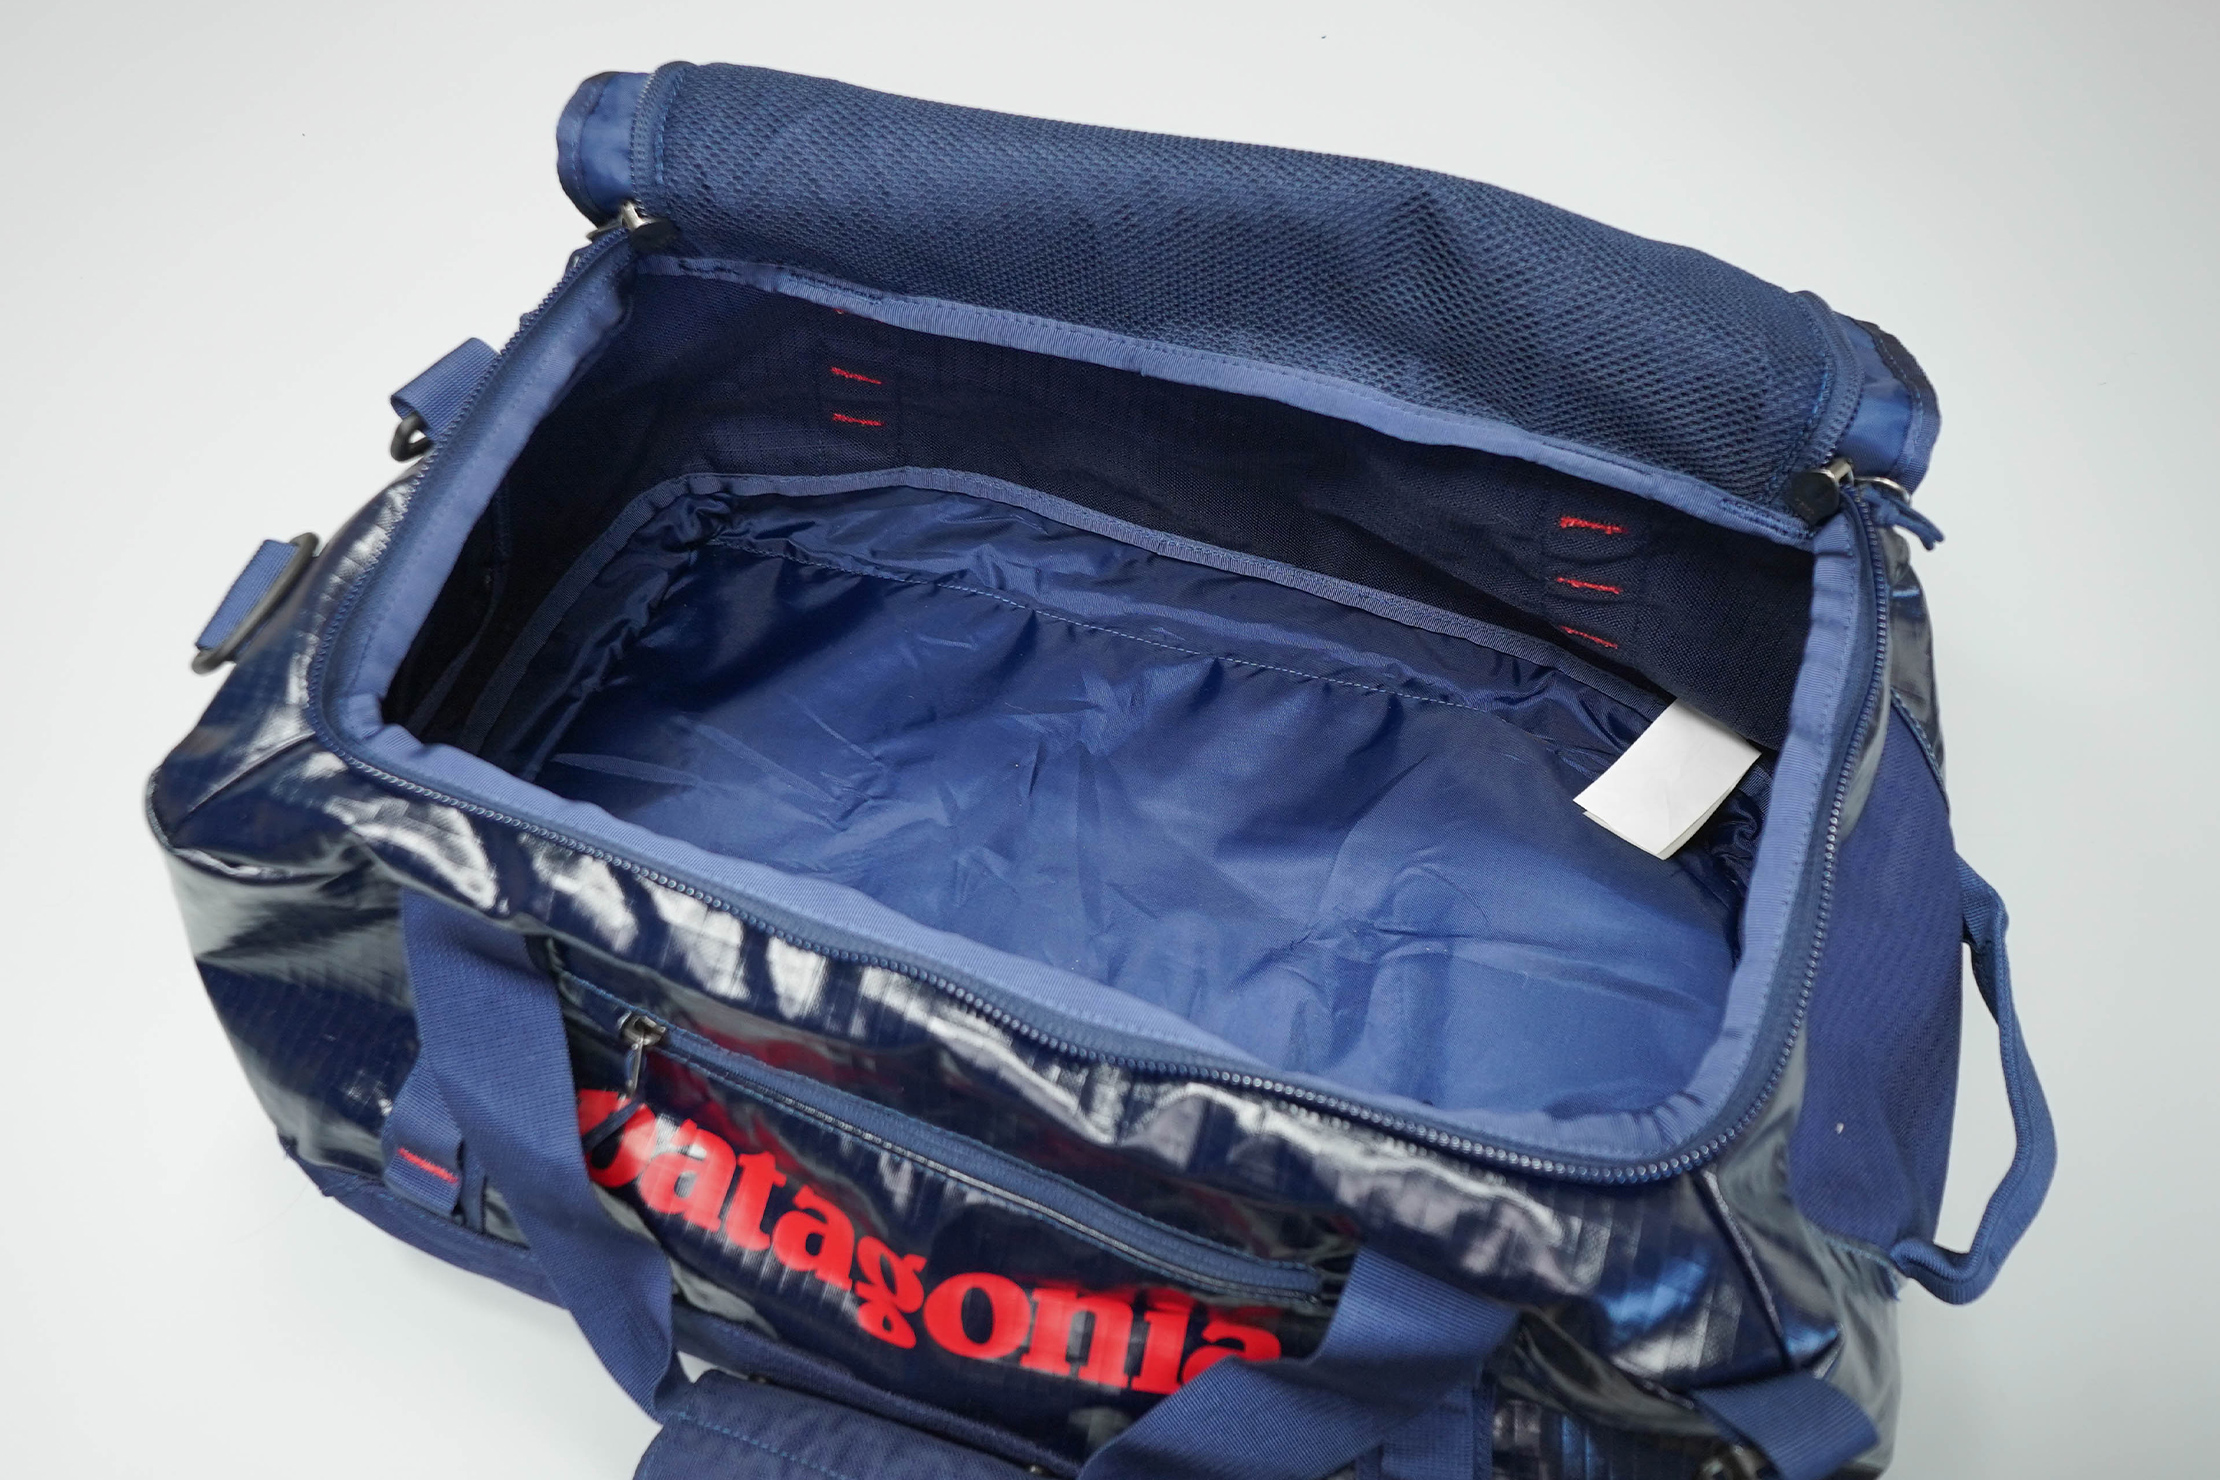 Patagonia Black Hole Duffel Bag 40L Main Compartment